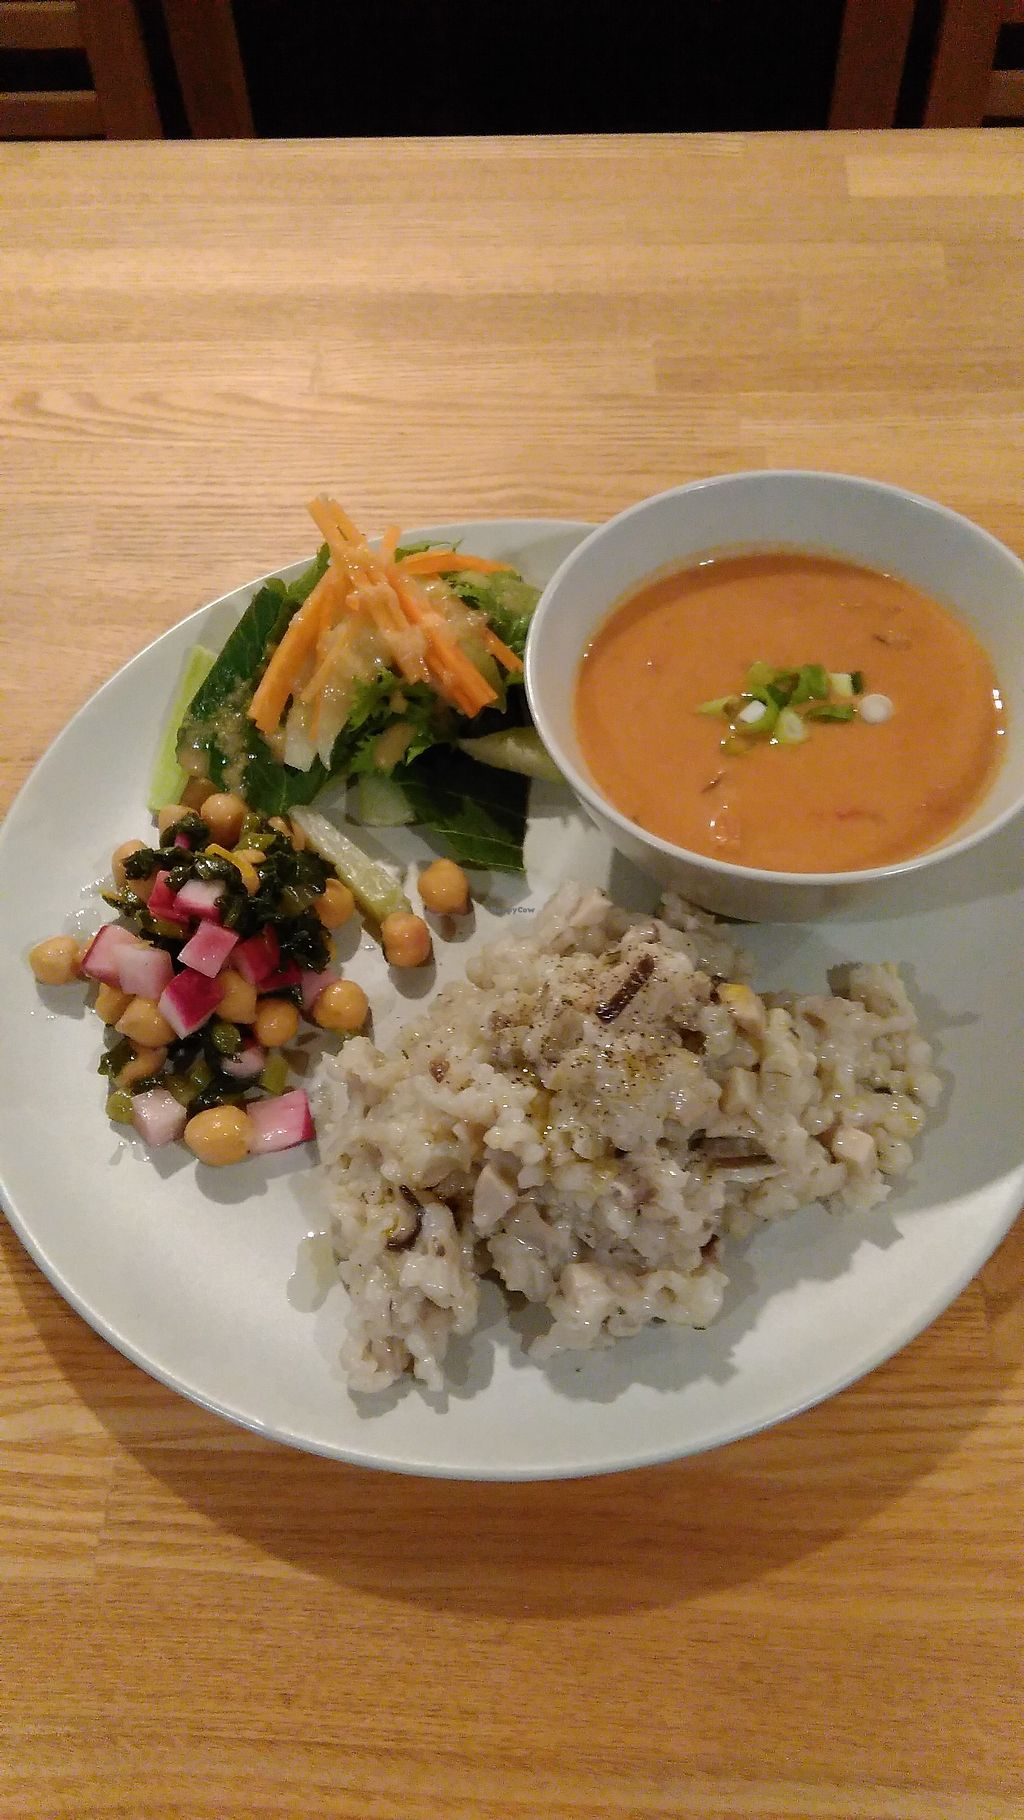 """Photo of Kuppila  by <a href=""""/members/profile/Kuppila"""">Kuppila</a> <br/>Vegan set lunch <br/> November 30, 2017  - <a href='/contact/abuse/image/104245/330726'>Report</a>"""